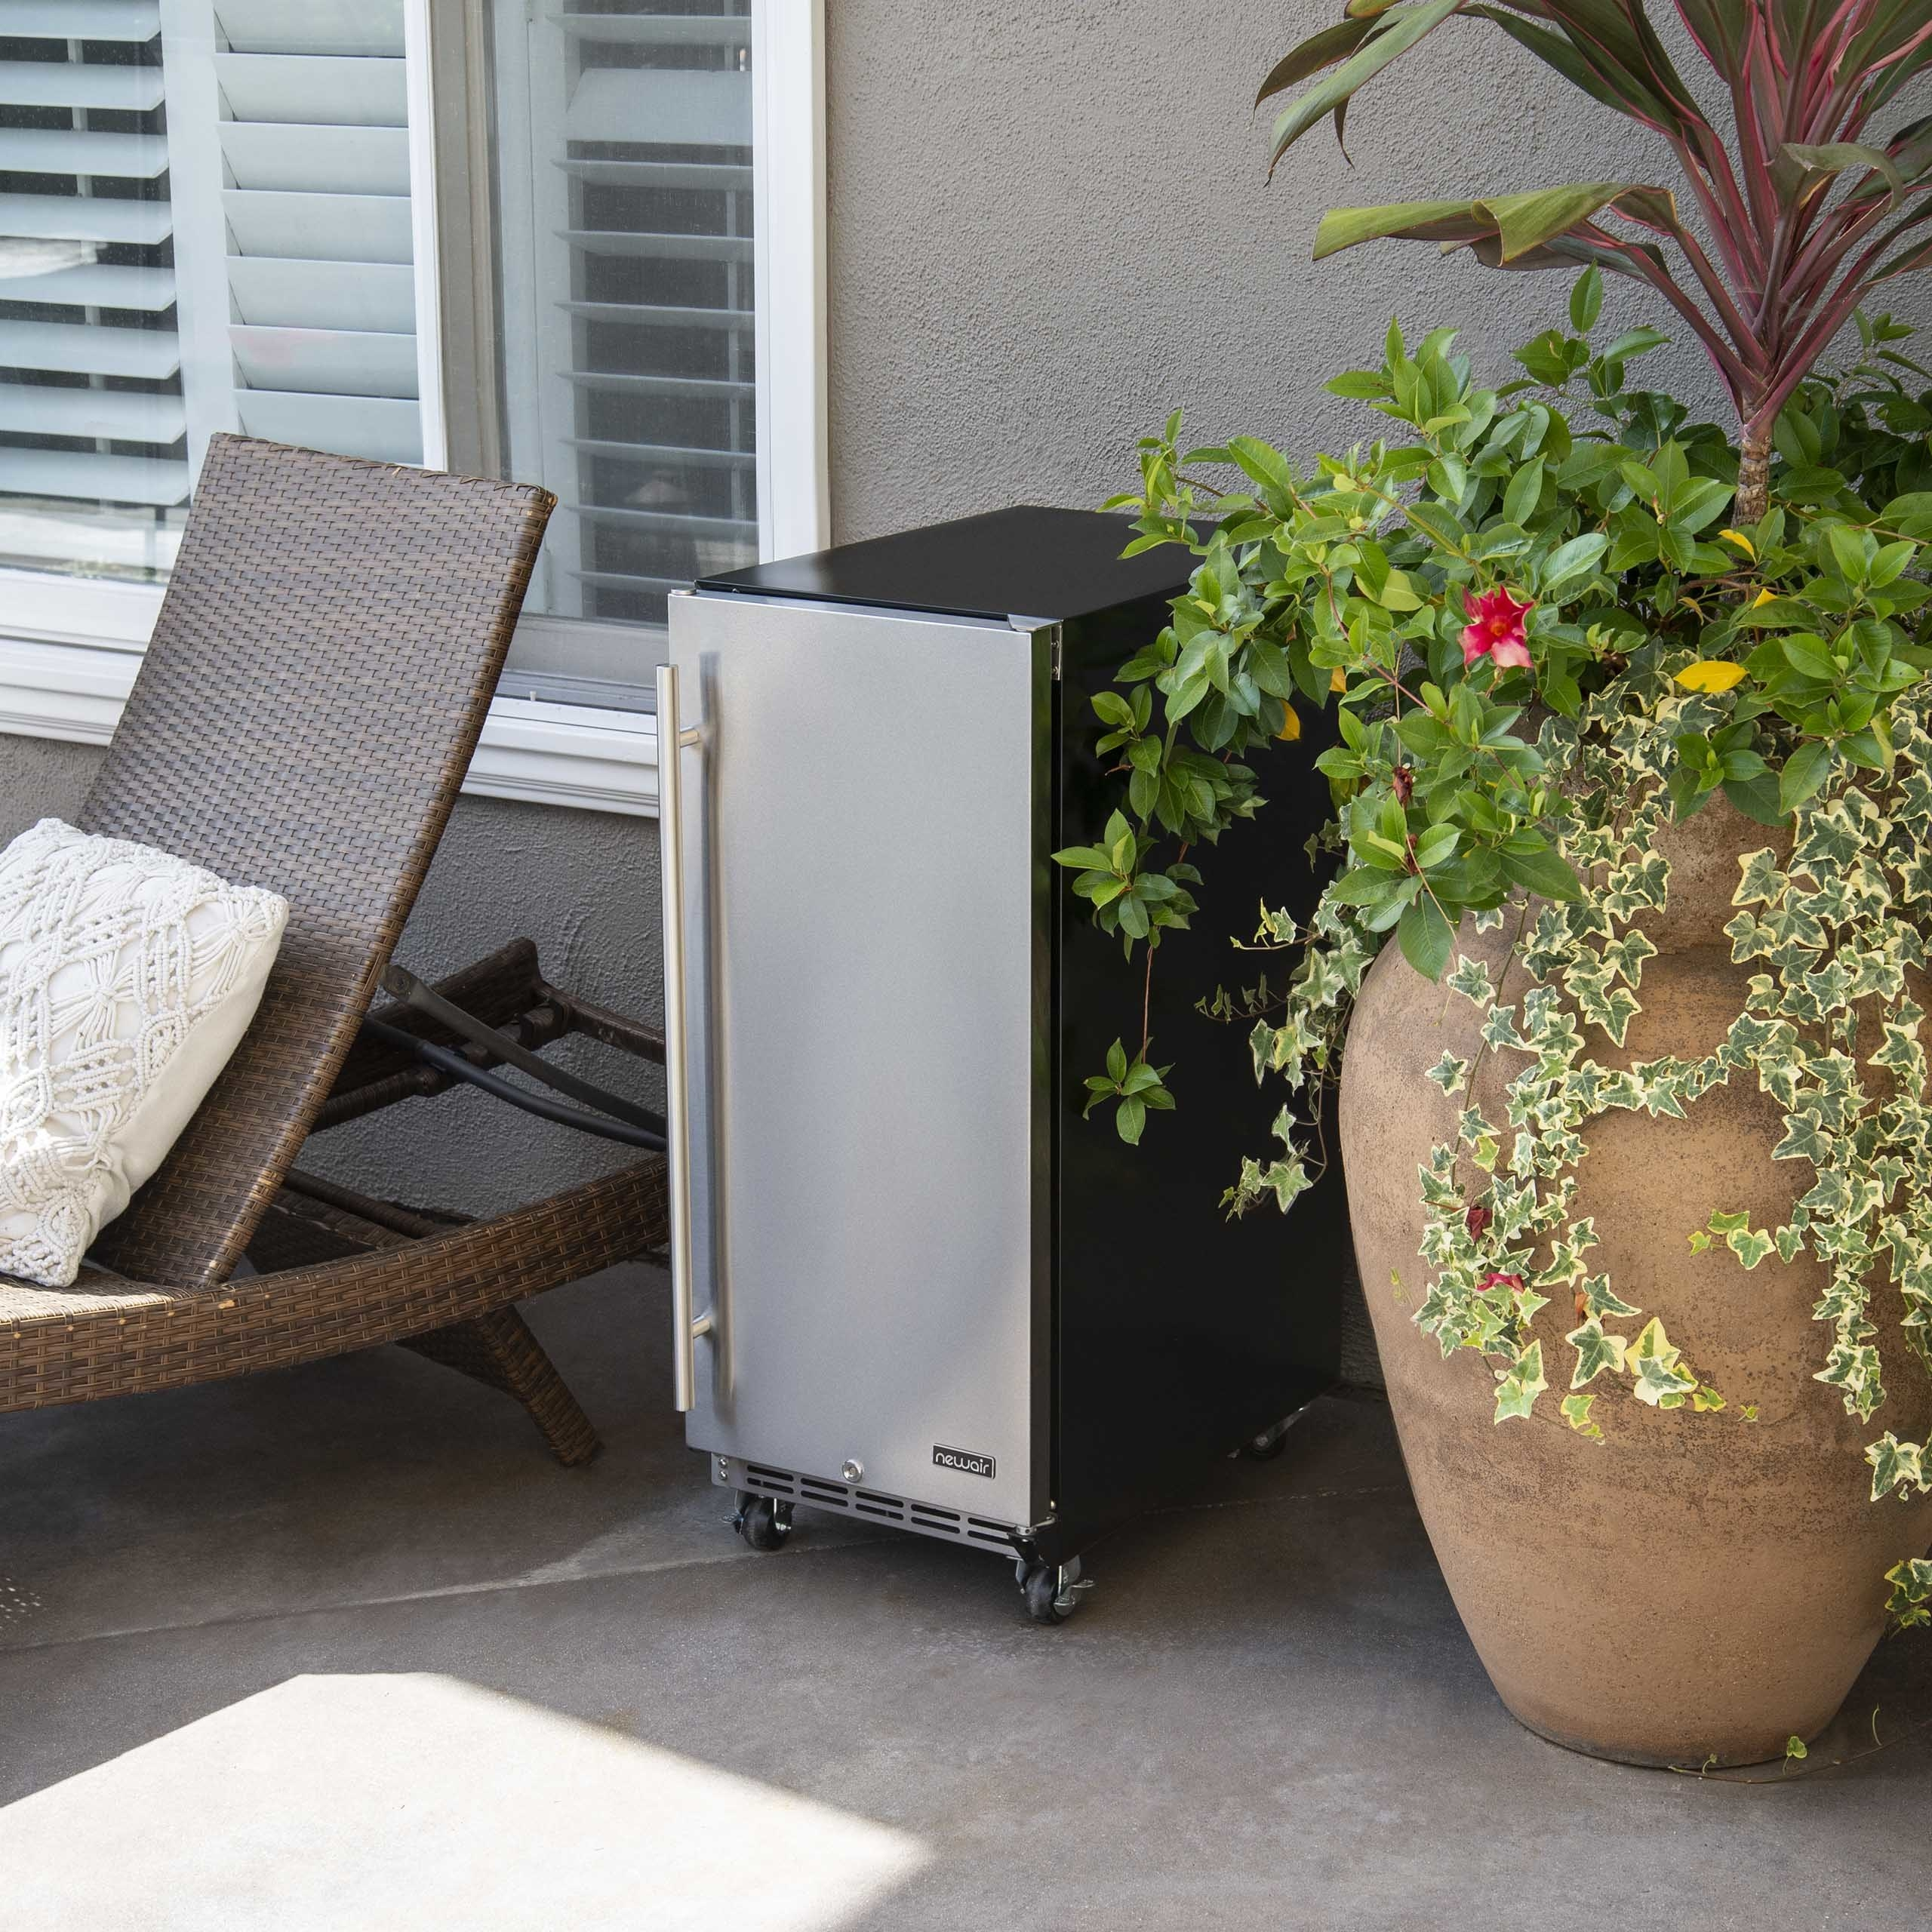 """The stainless steel NewAir 15"""" Built-in 90 Can Outdoor Rated Beverage Fridge with Auto-Closing Door and Easy Glide Casters on a back patio"""